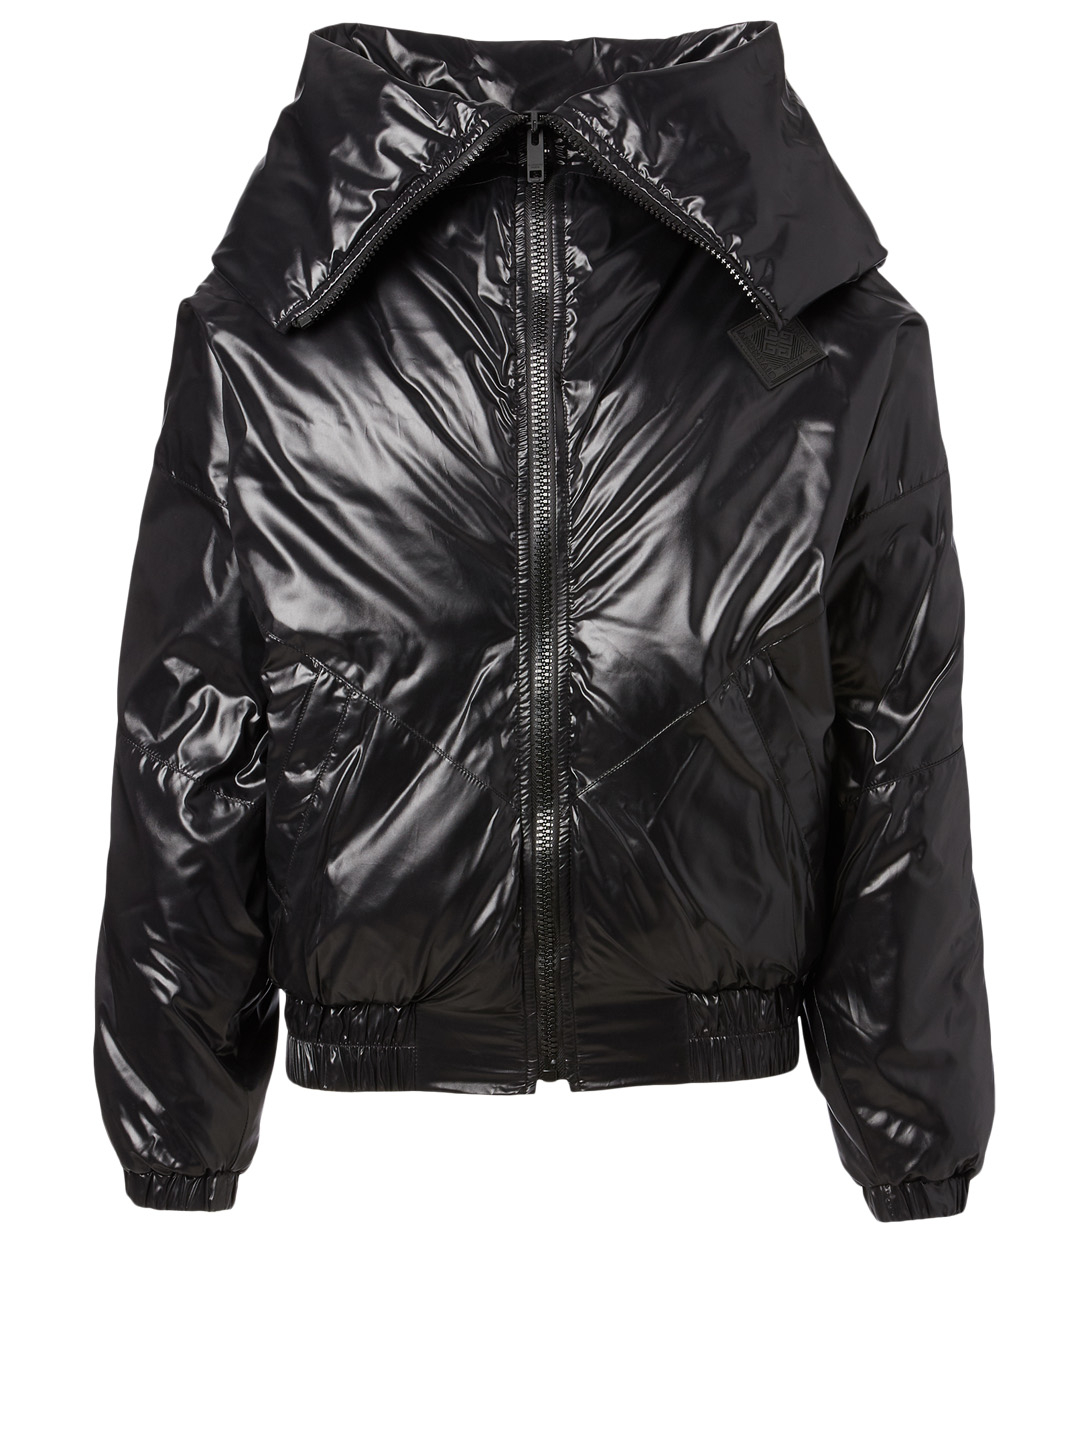 GIVENCHY Logo Puffer Jacket Women's Black